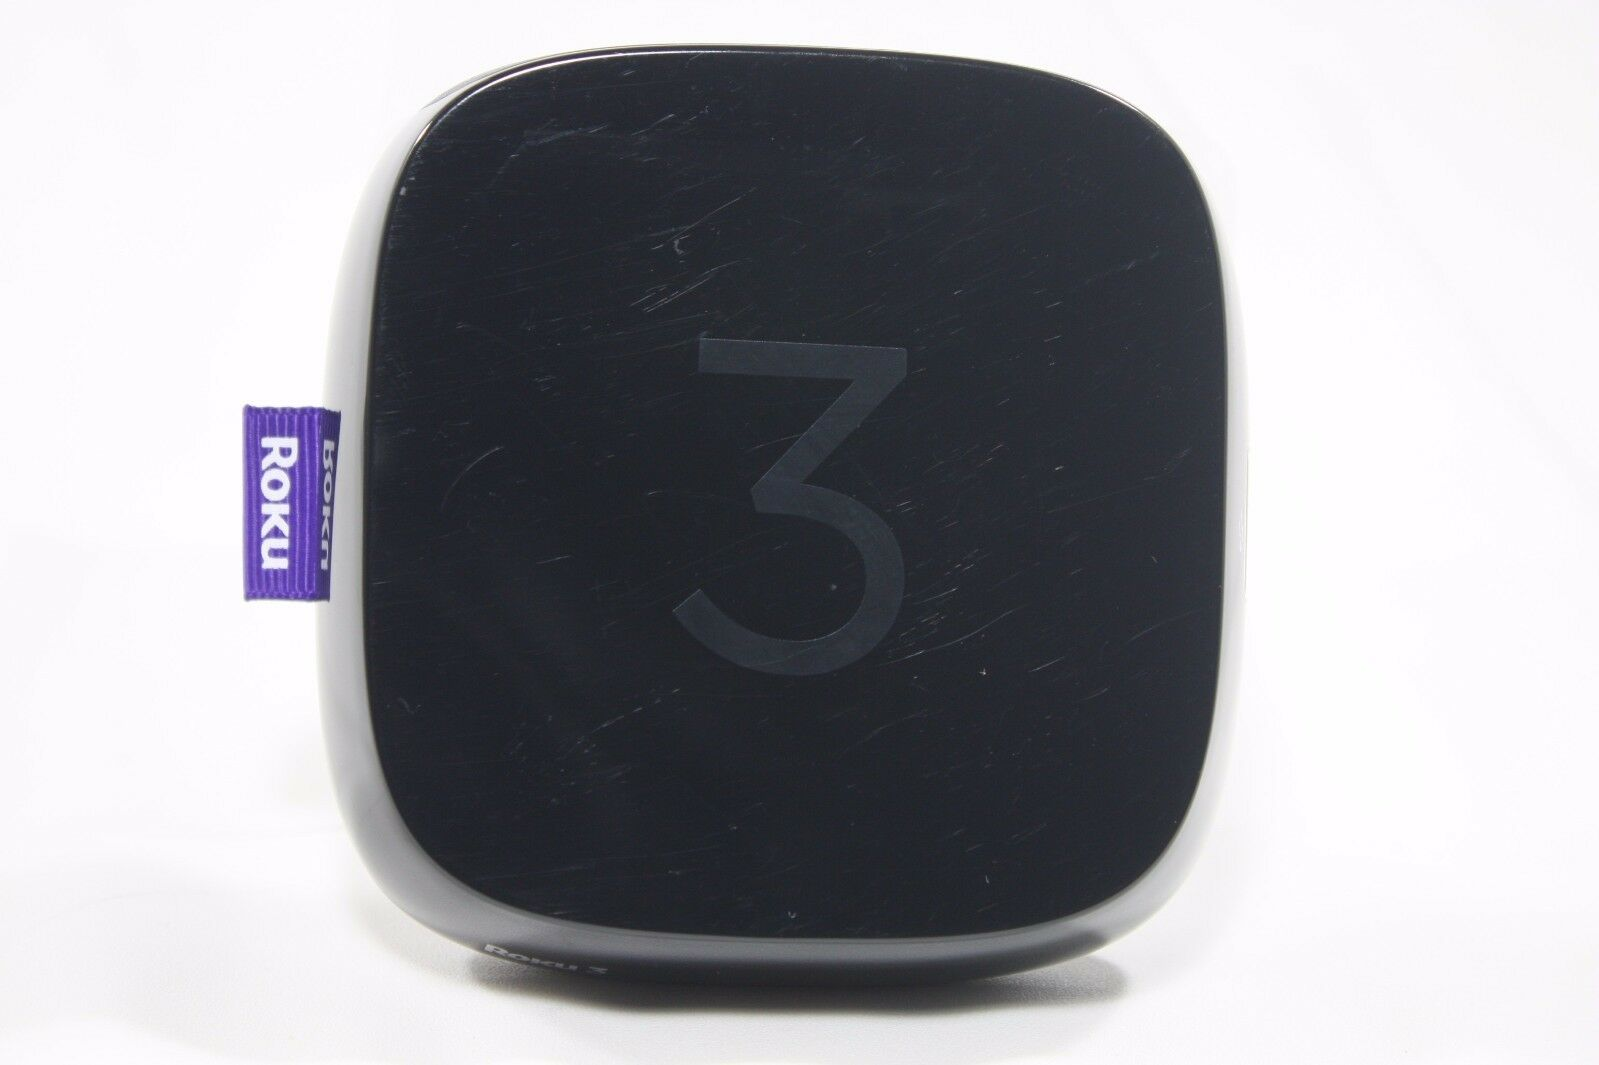 Xxl Sessel Roqu For Parts Or Repair Roku Digital Hd Media Streamer Roku Only 3